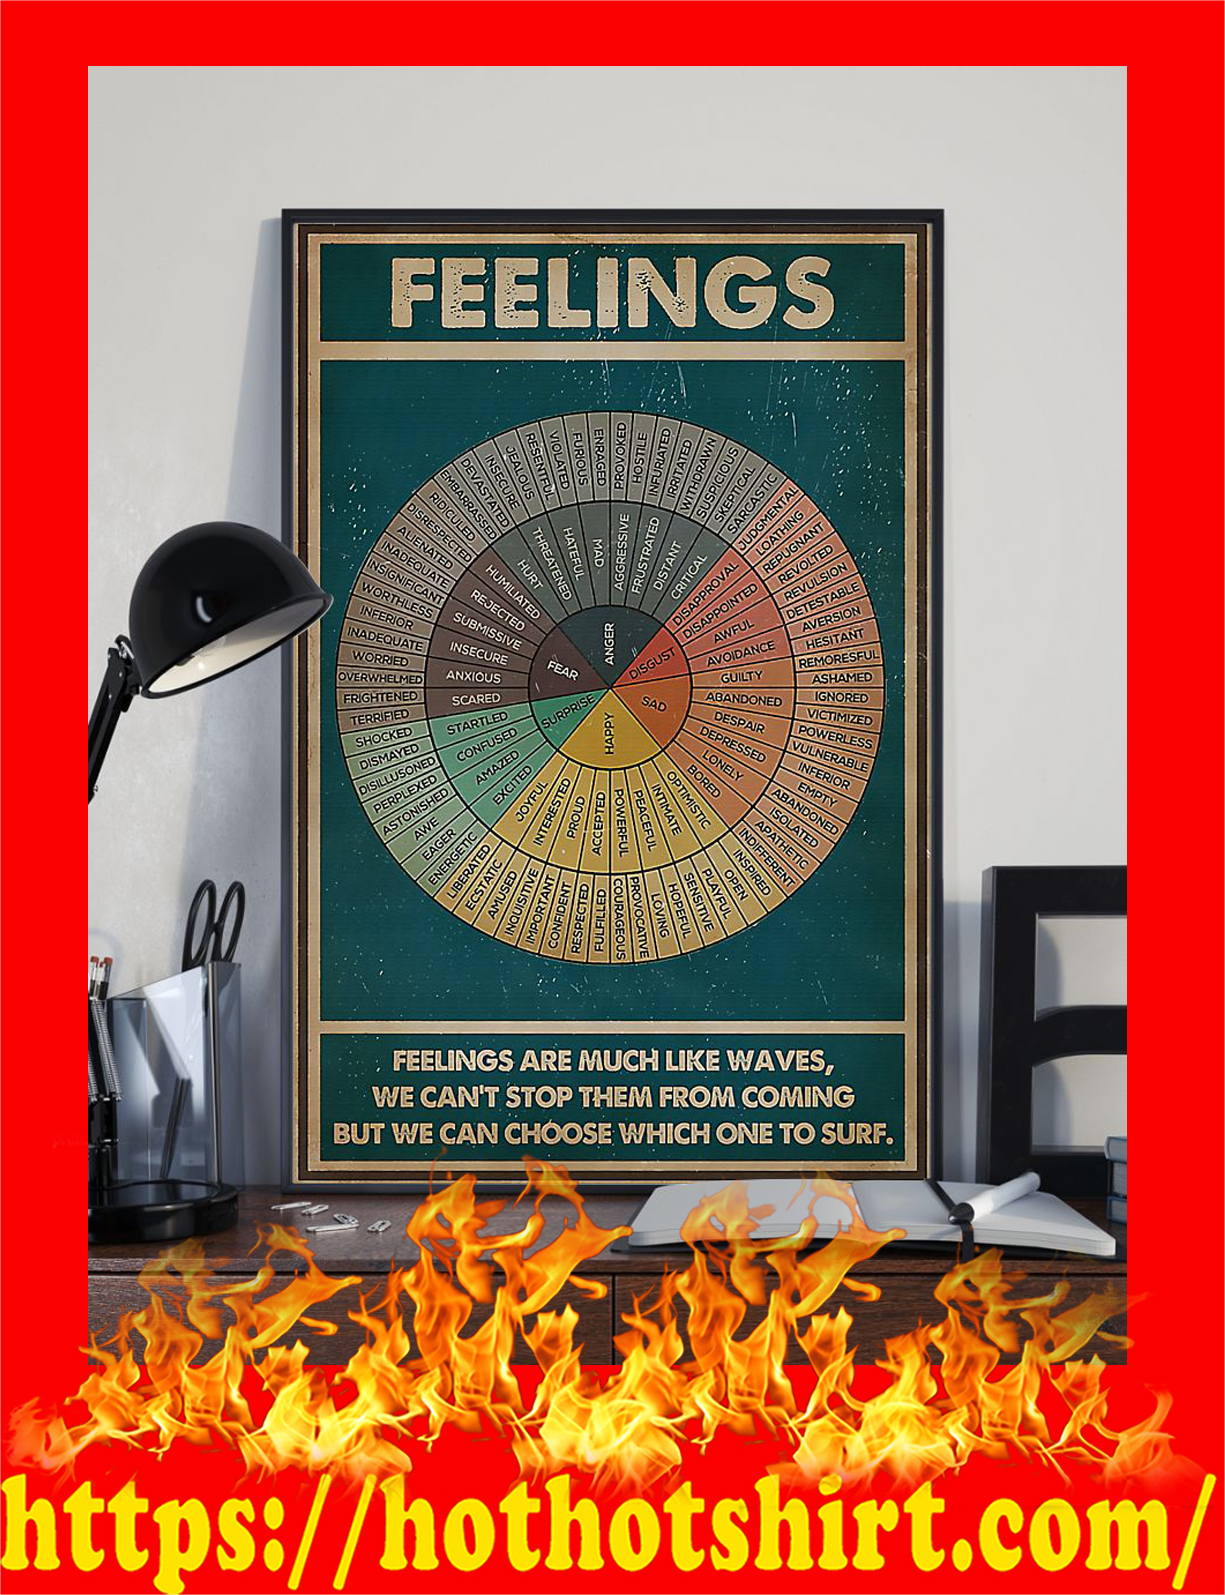 Social worker feelings feelings are much like waves poster - pic 2